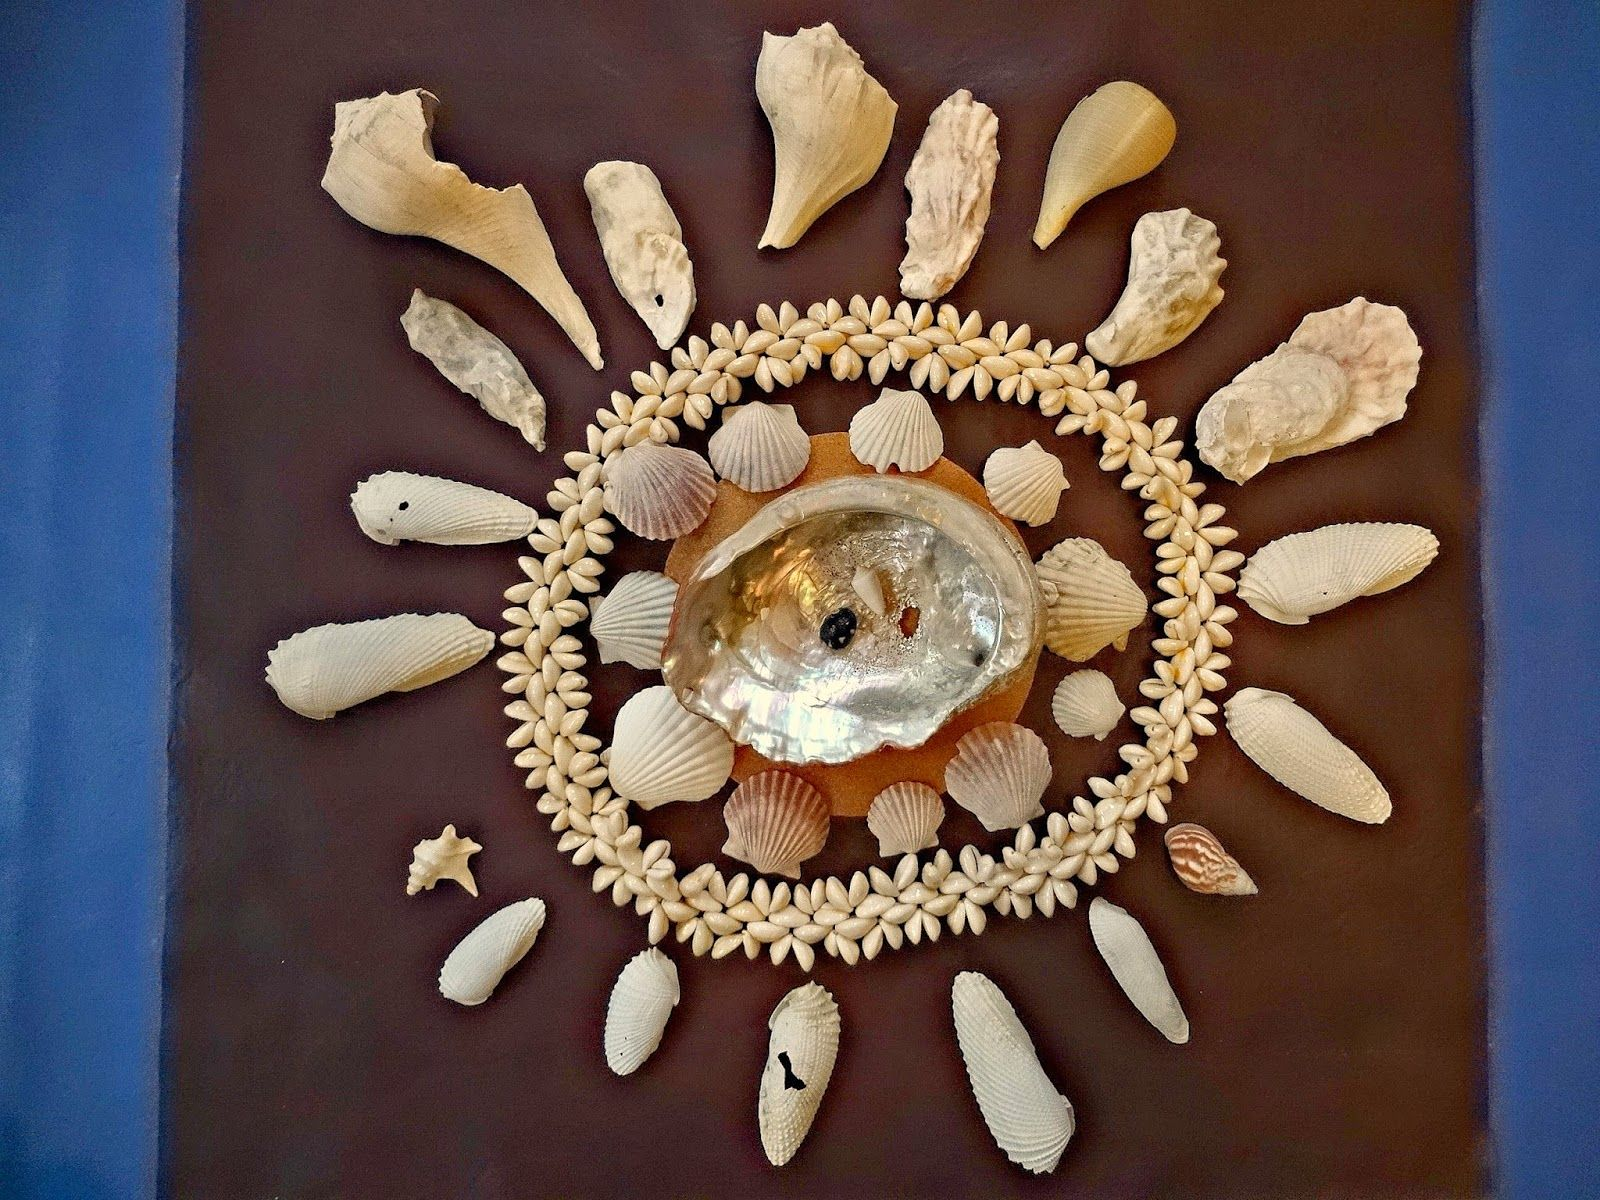 Shell Designs Inspired Montessori And Arts At Dundee Montessori Ocean Study